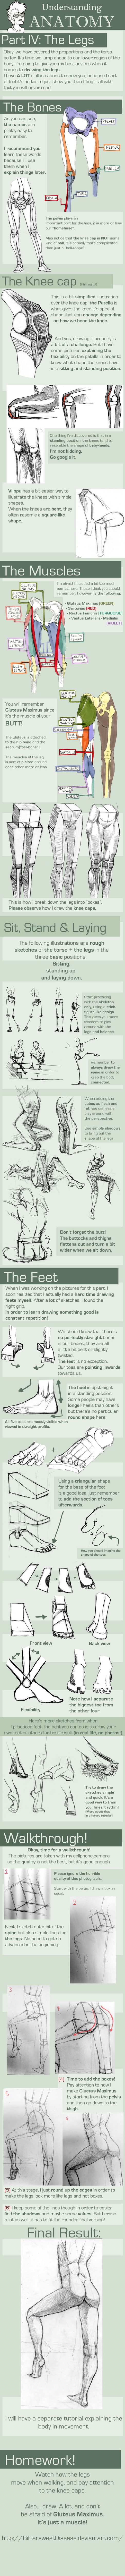 UNDERSTANDING ANATOMY: part IV by FOERVRAENGD.deviantart.com on @deviantART